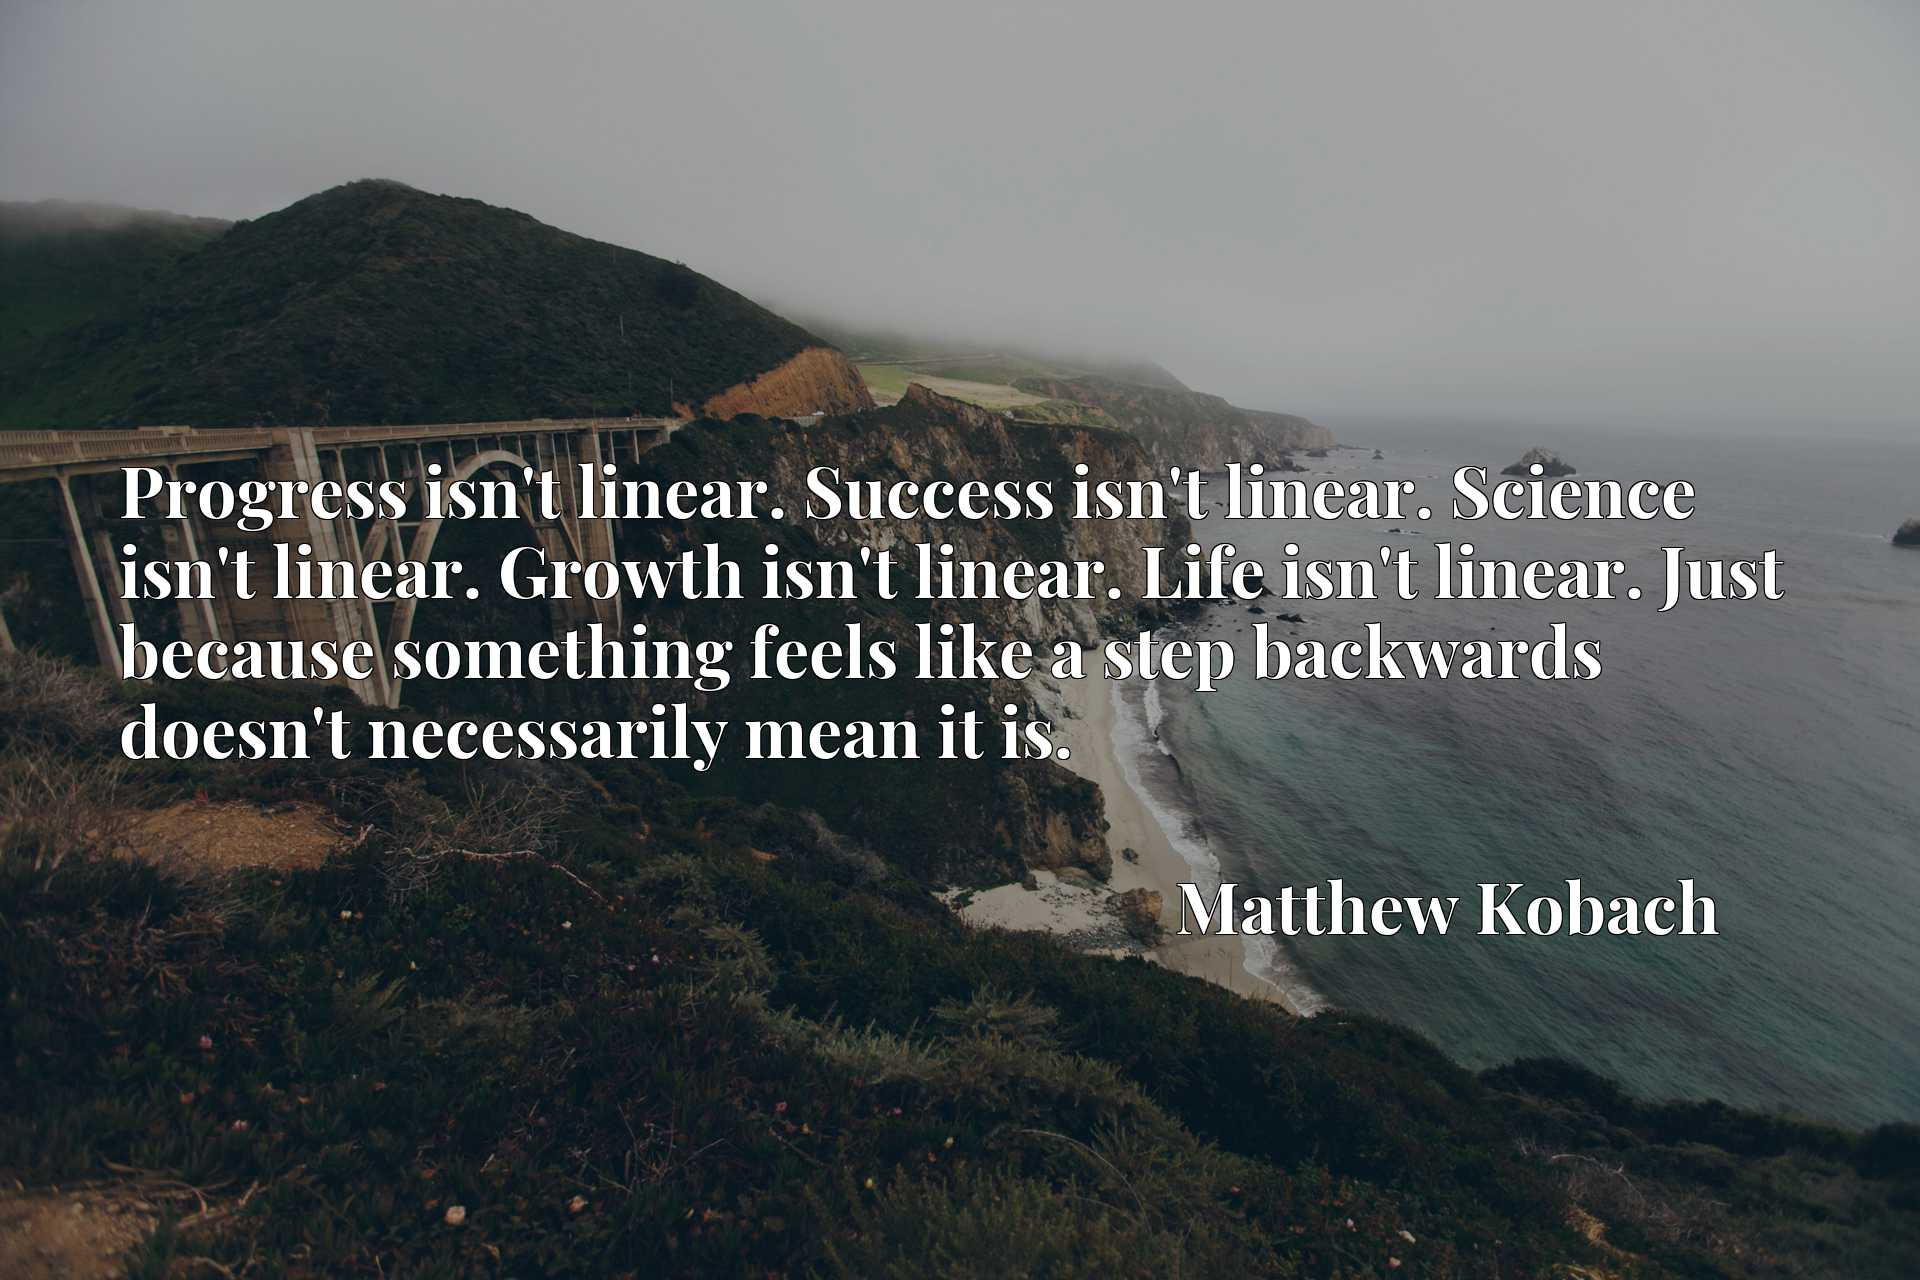 Progress isn't linear. Success isn't linear. Science isn't linear. Growth isn't linear. Life isn't linear. Just because something feels like a step backwards doesn't necessarily mean it is.